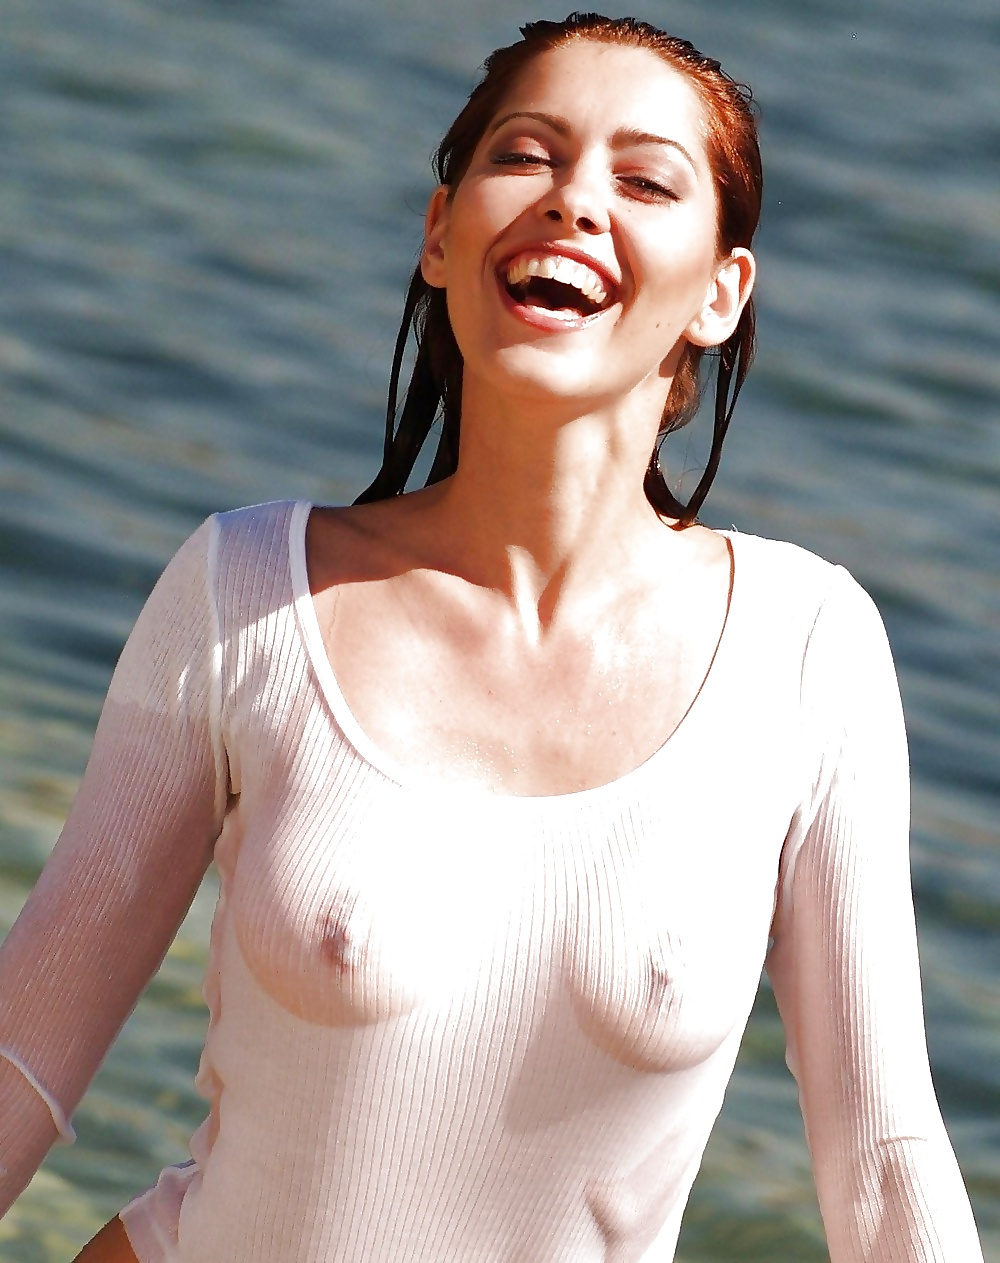 Kate Upton Big Tits See Through In Wet